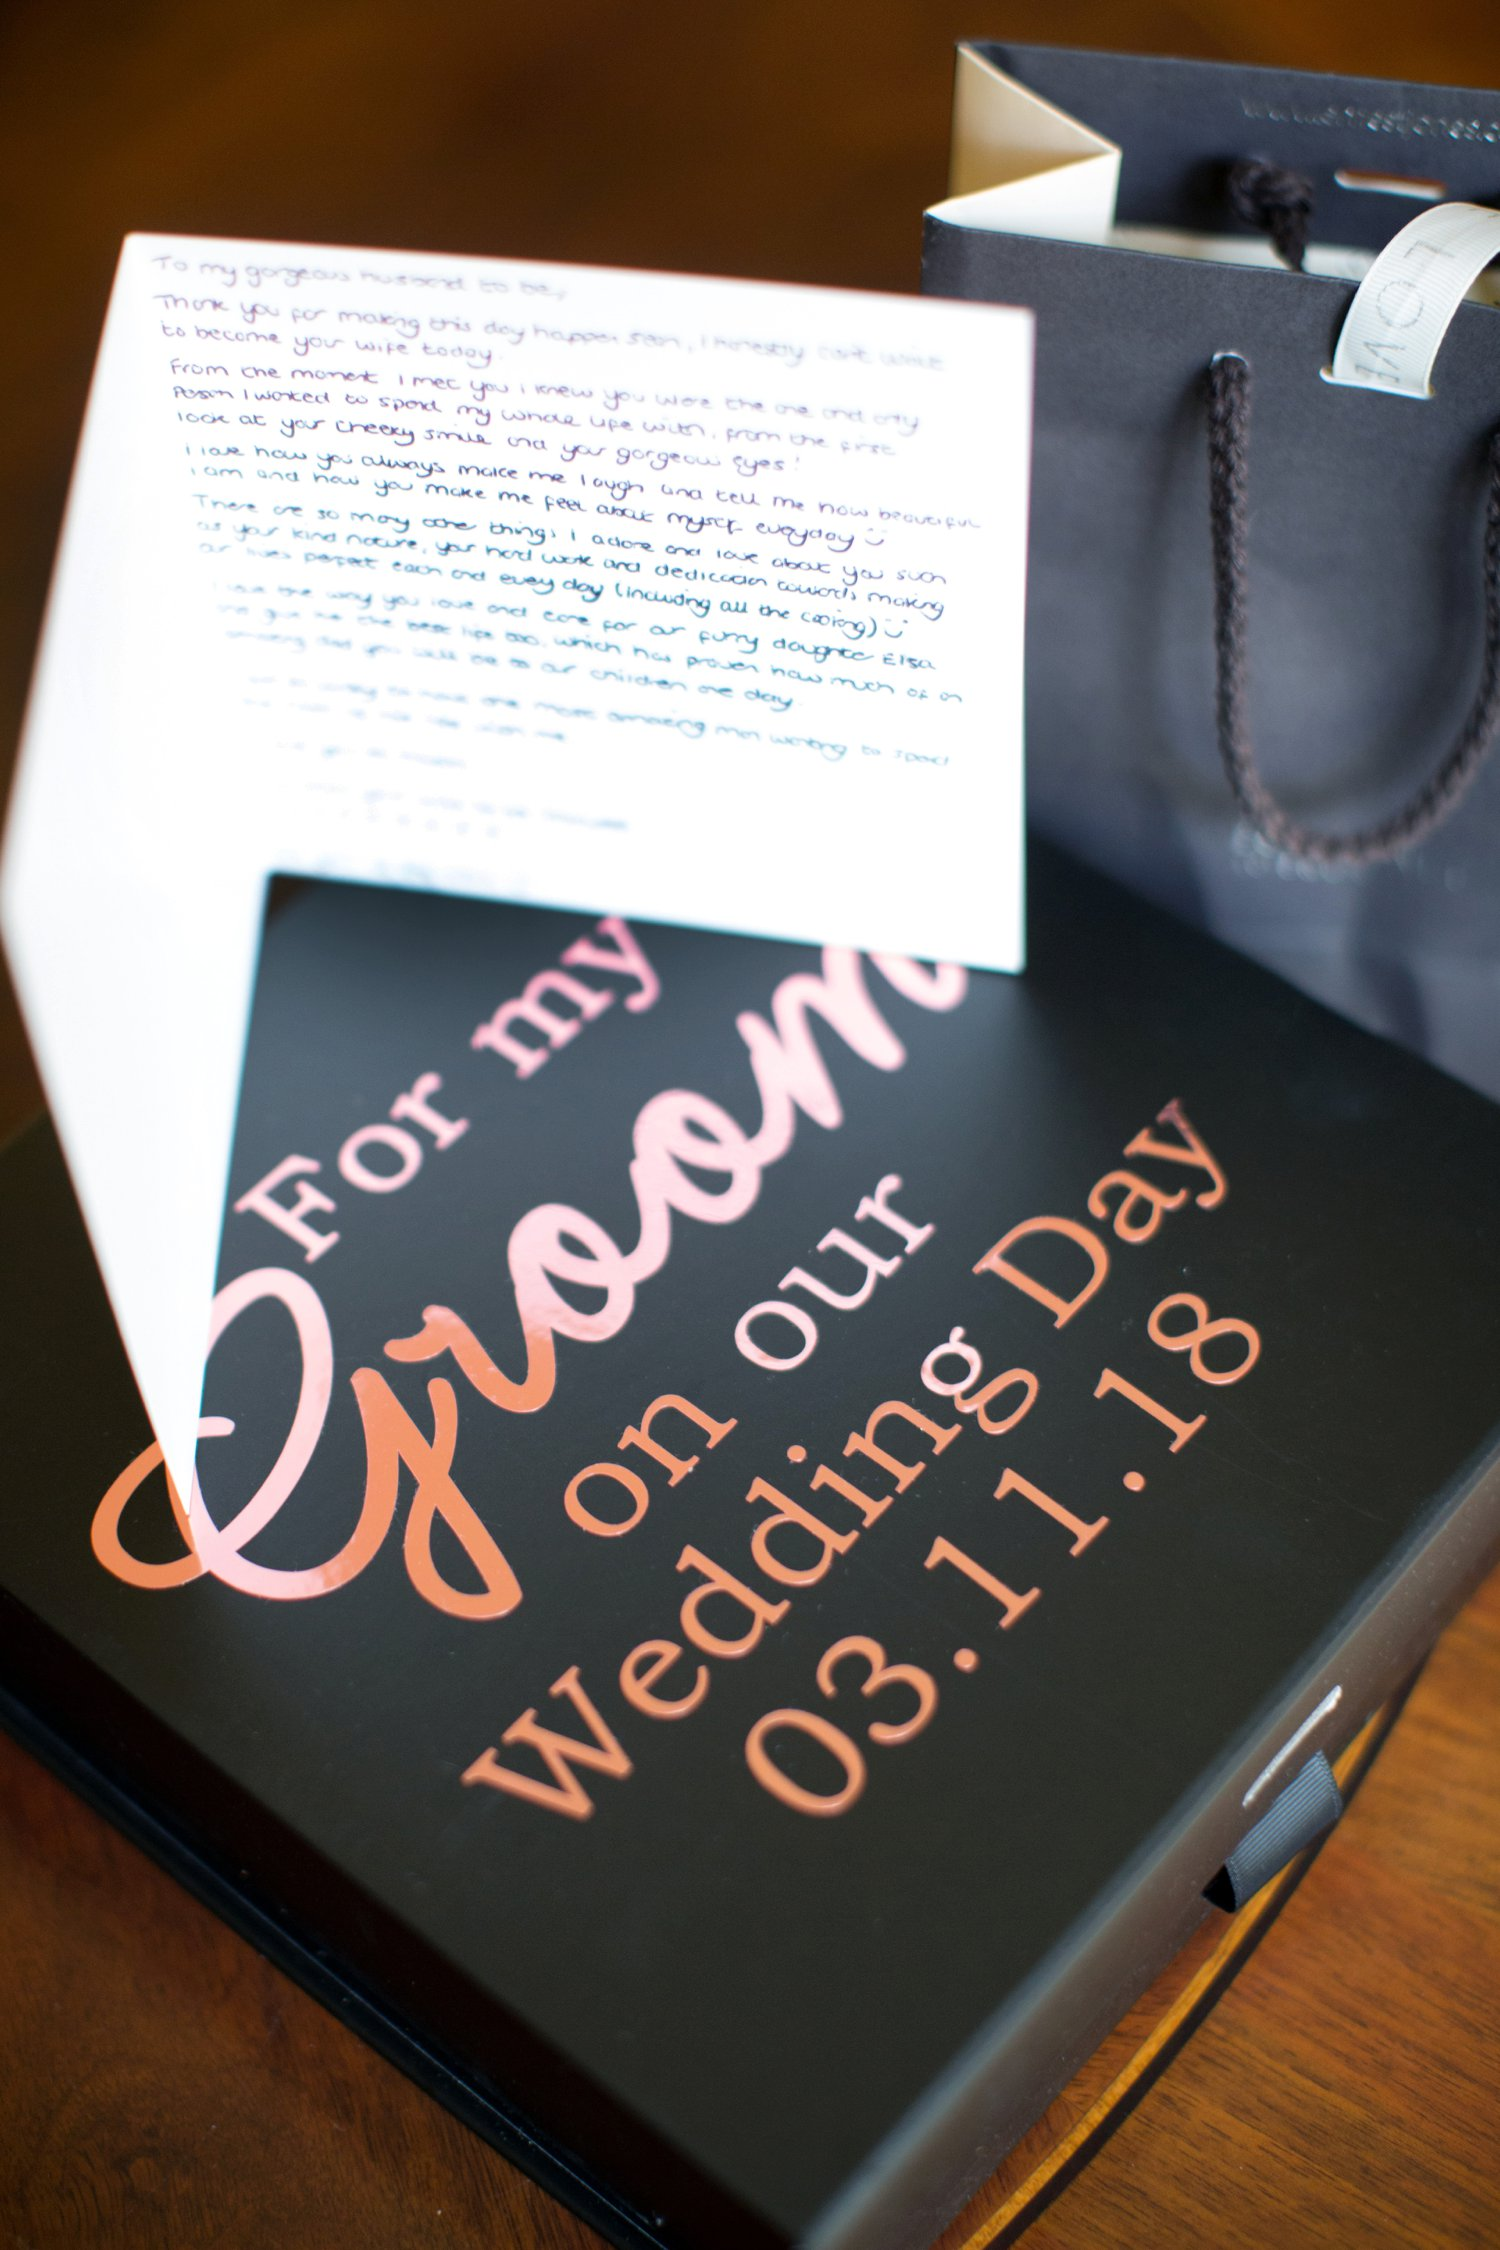 groom to be's gift from bride